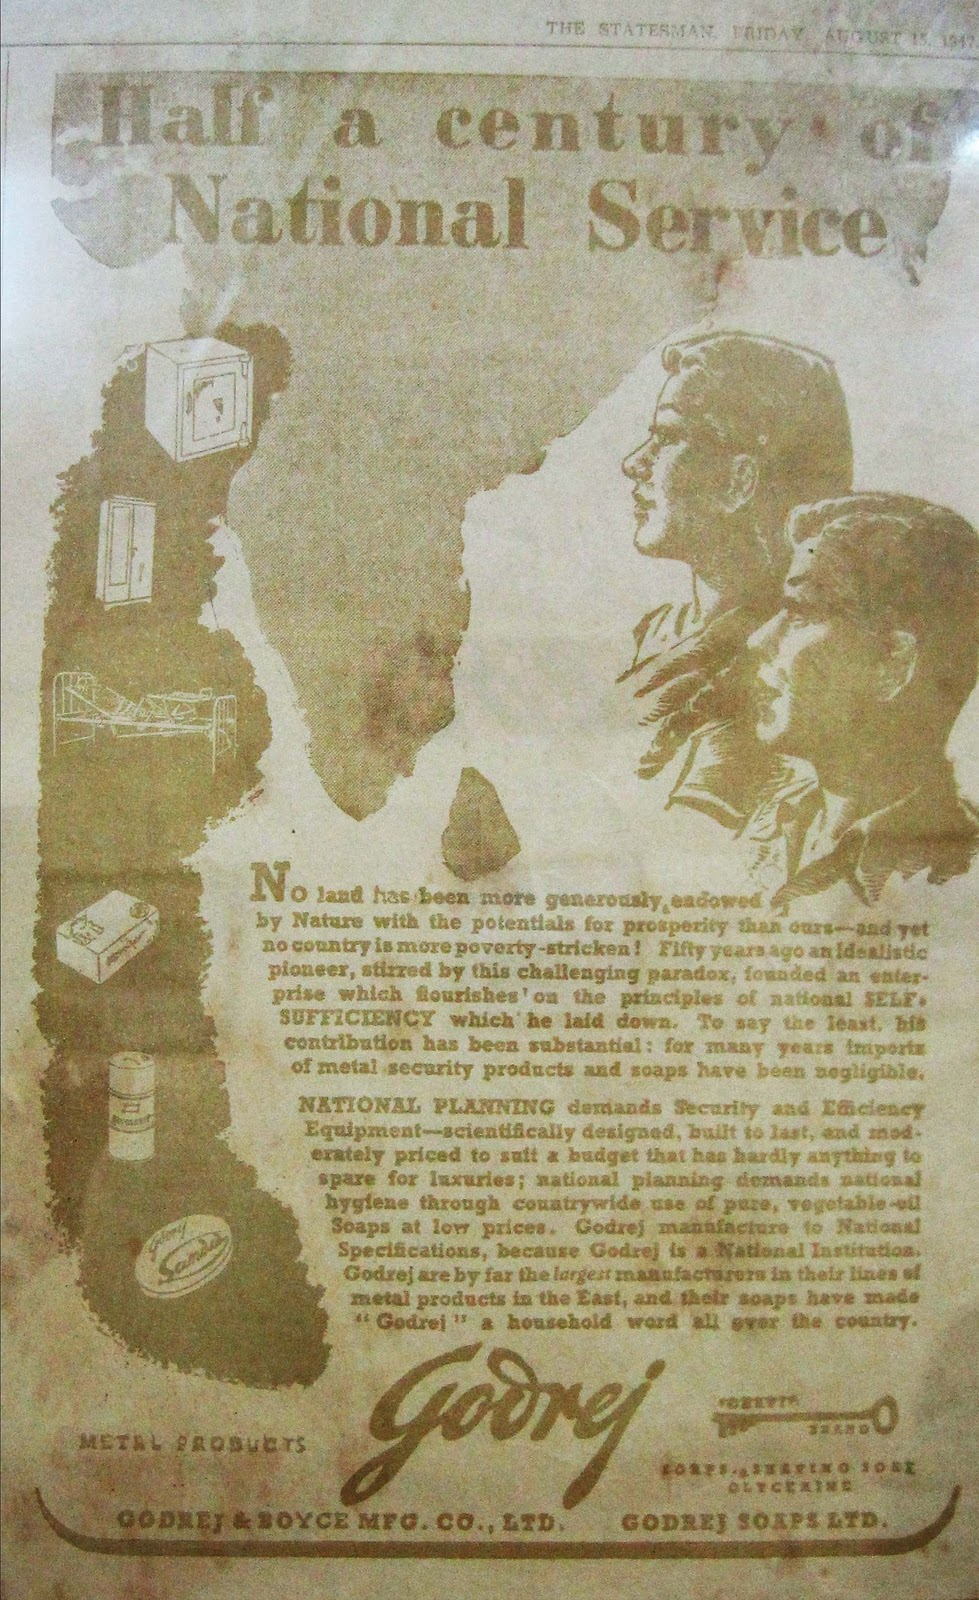 Advertisement that were released in newspapers on Independence Day - 15th Aug 1947